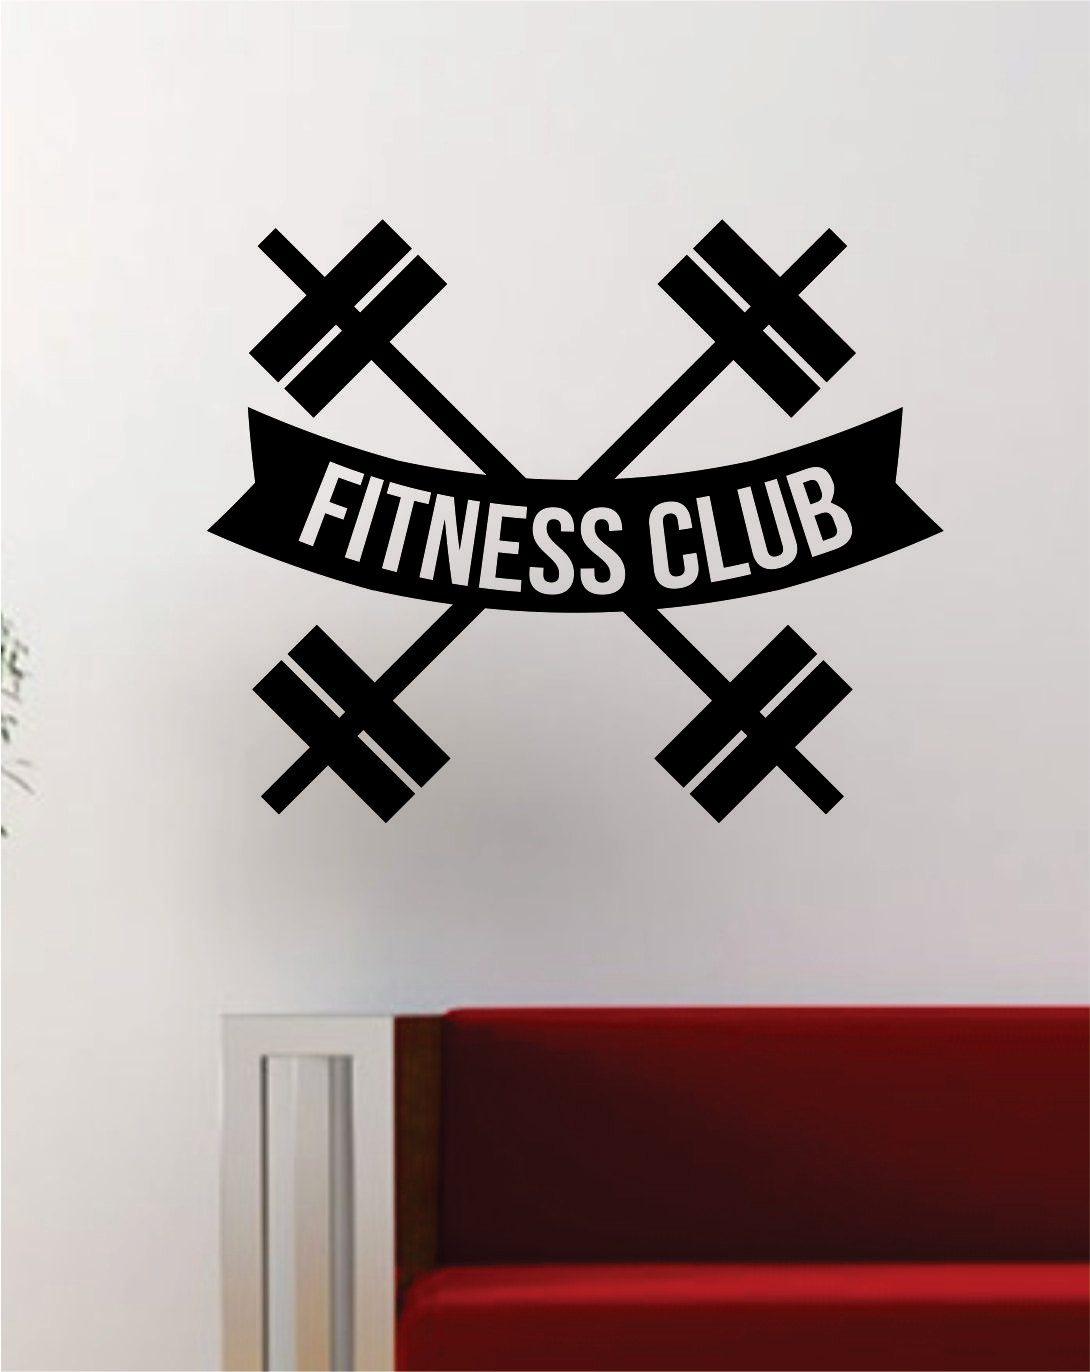 Sticker gym wall - Fitness Club Wall Decals Home Gym Wall